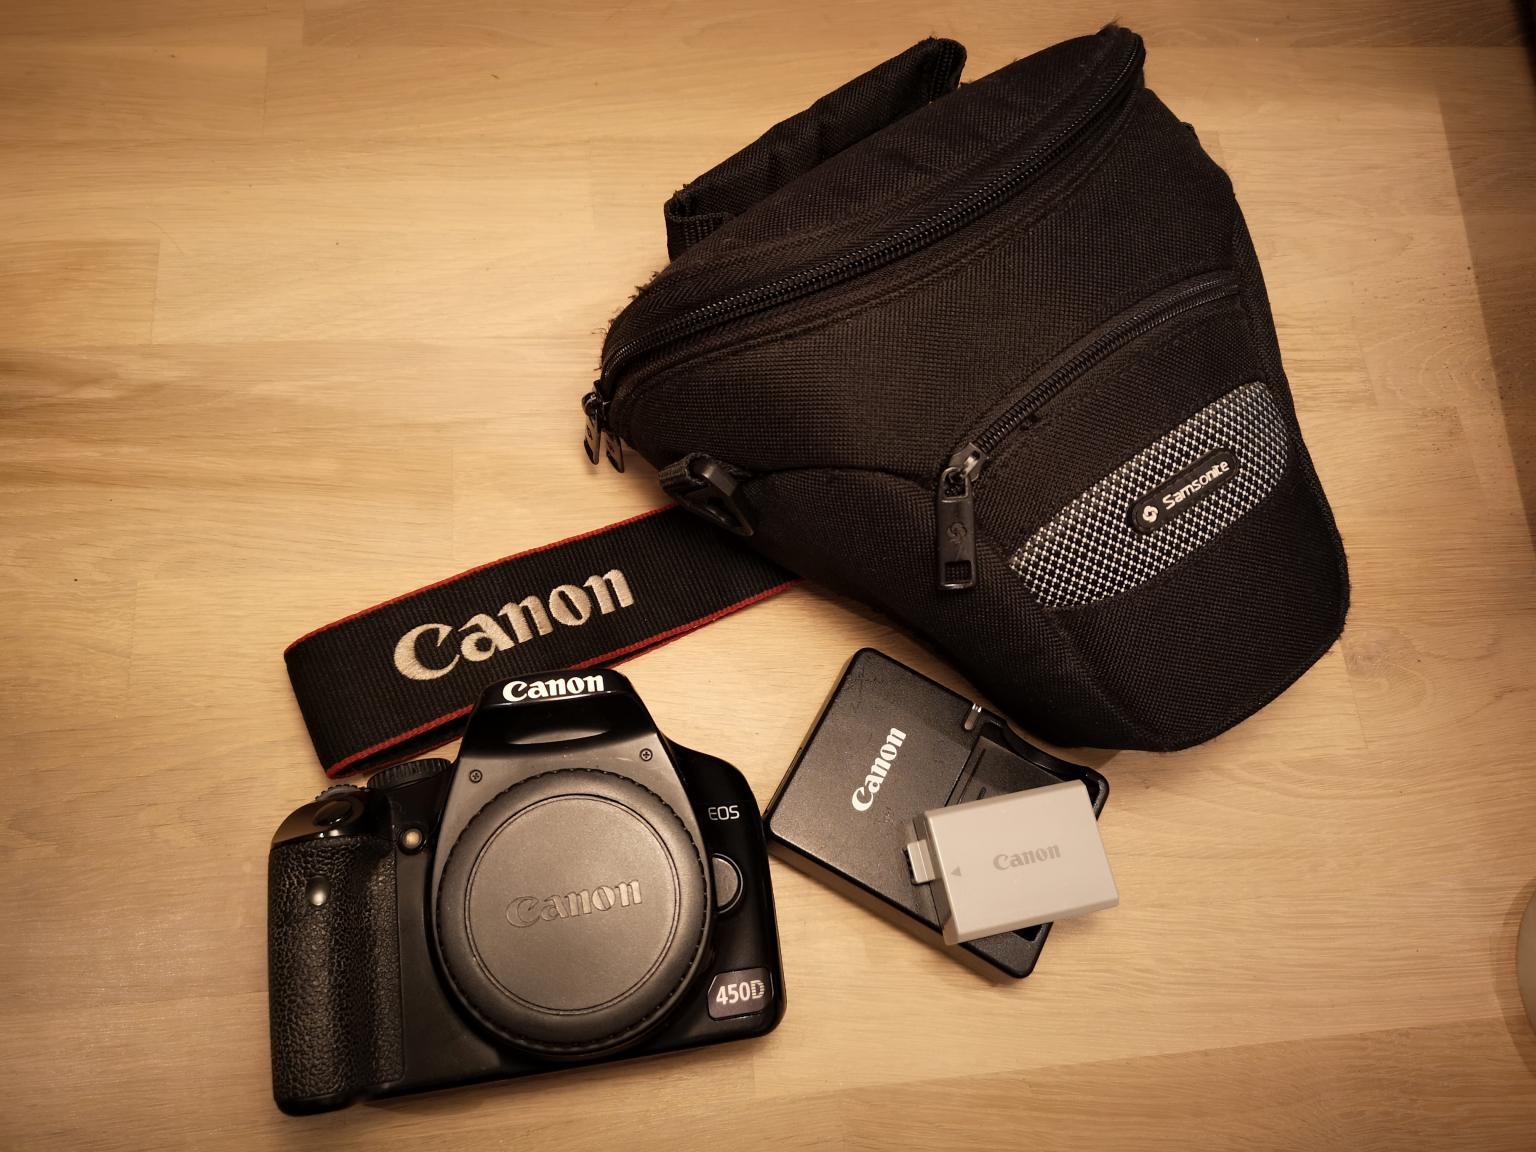 Canon 450D body with case